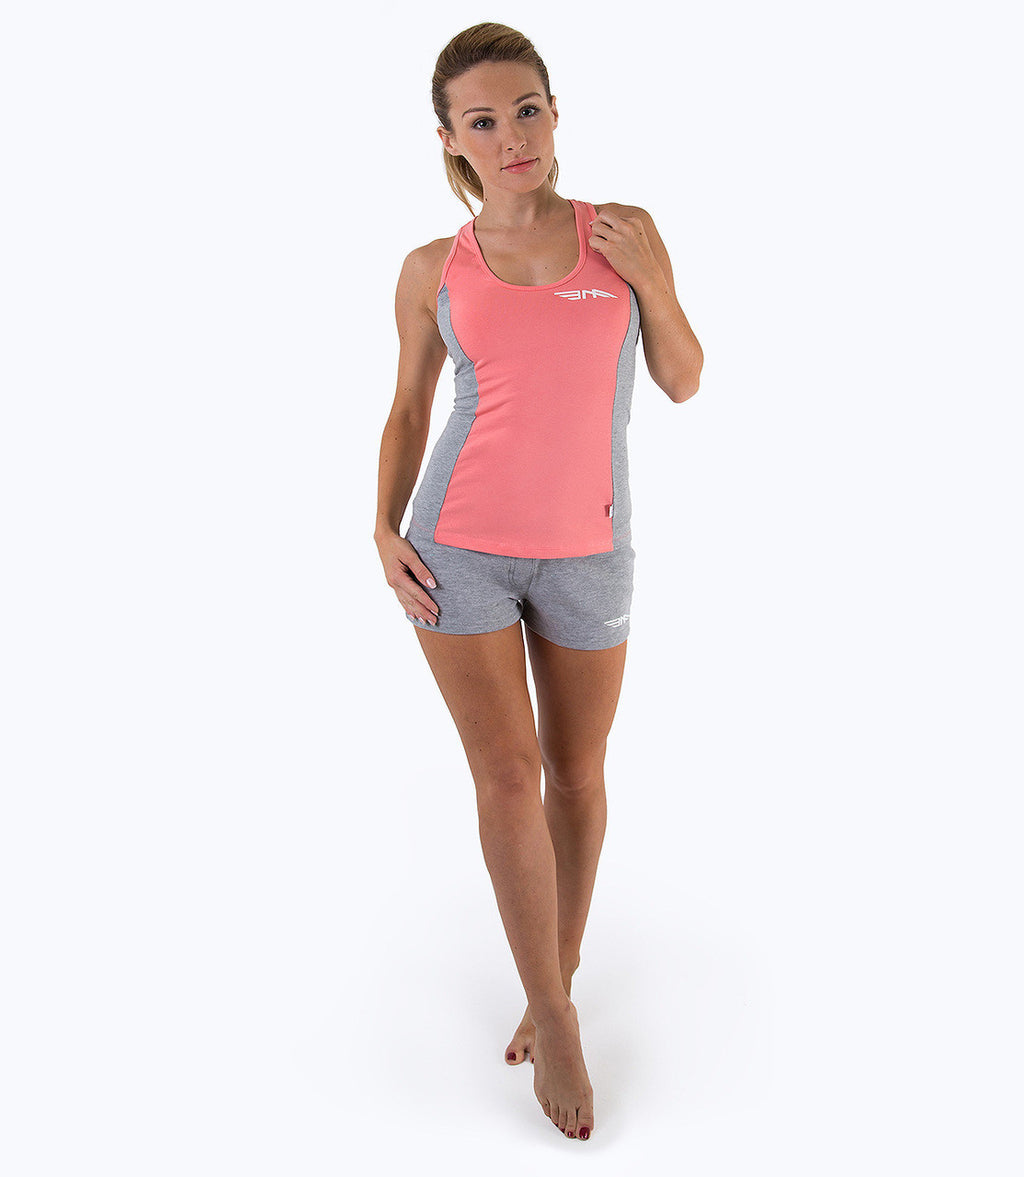 LADIES COLOUR BLOCK VEST- CORAL/GREY